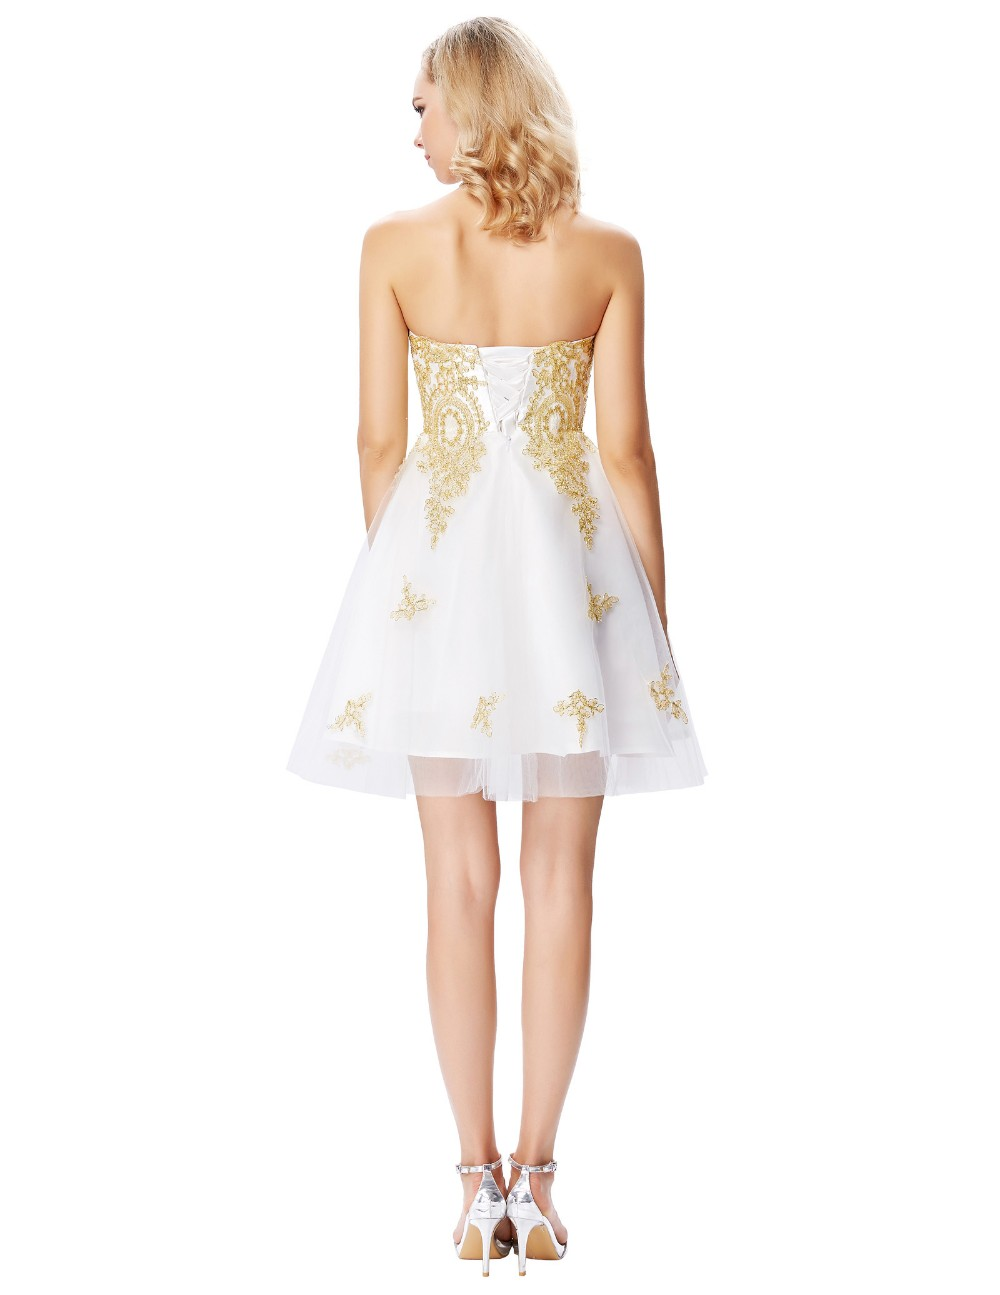 Grace Karin Strapless Sweetheart Golden Appliqued White Beaded Tulle Cocktail Dress GK000138-1